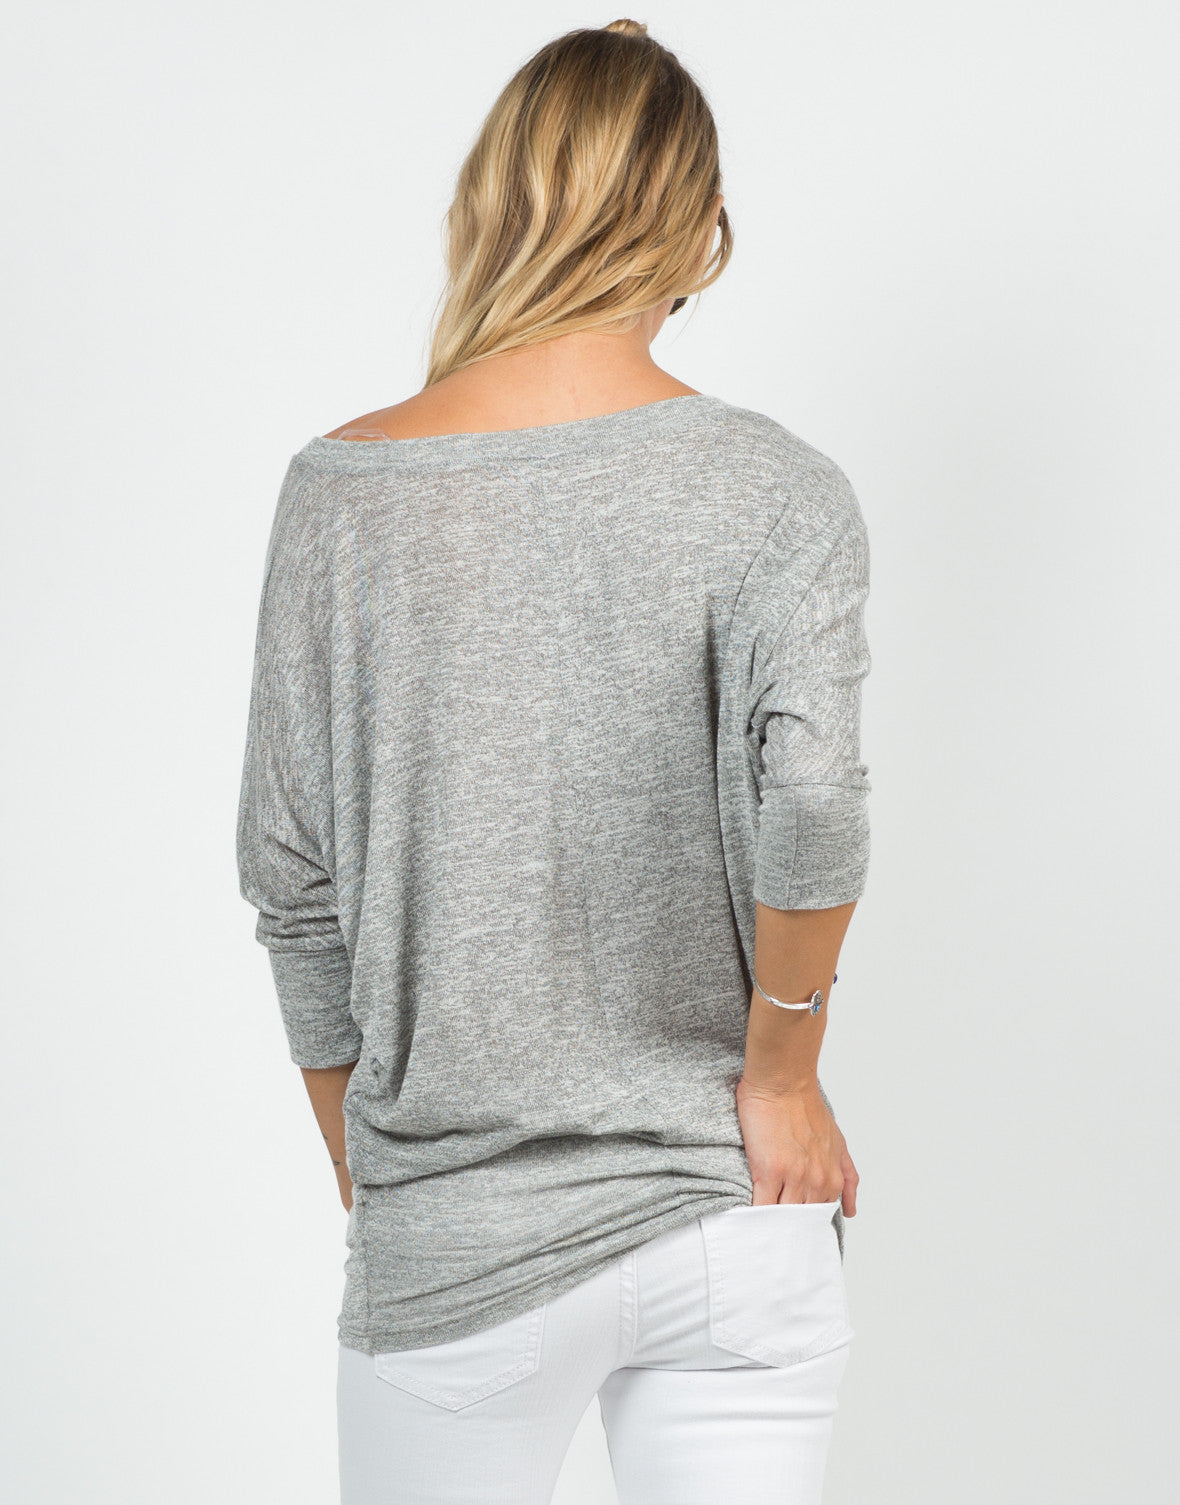 Back View of Soft 3/4 Dolman Sleeve Top